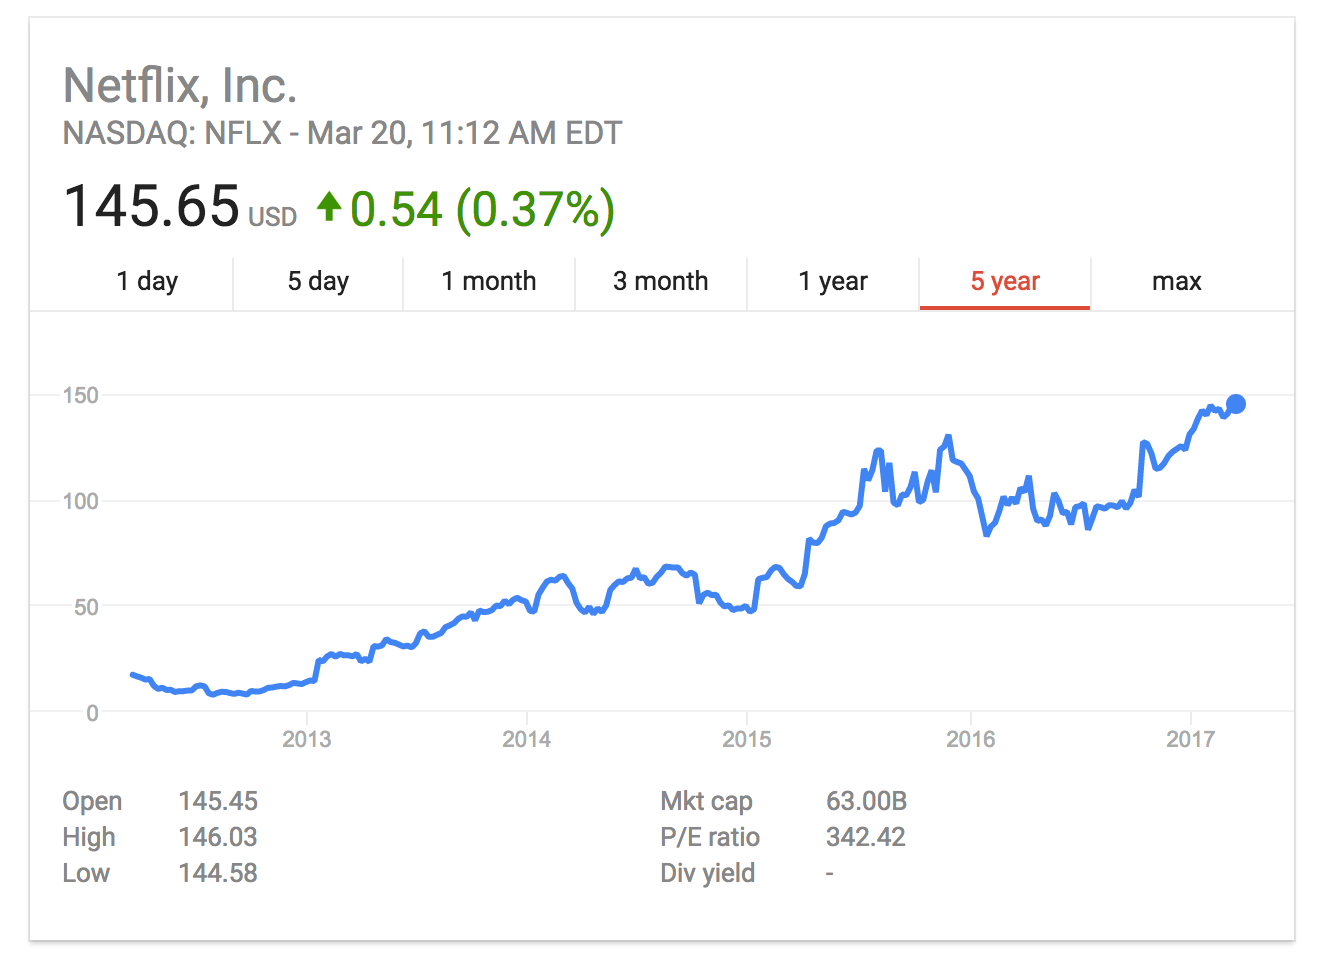 Samsung Stock Quote A Timeline Of Netflix's Conflicting Stances On Net Neutrality